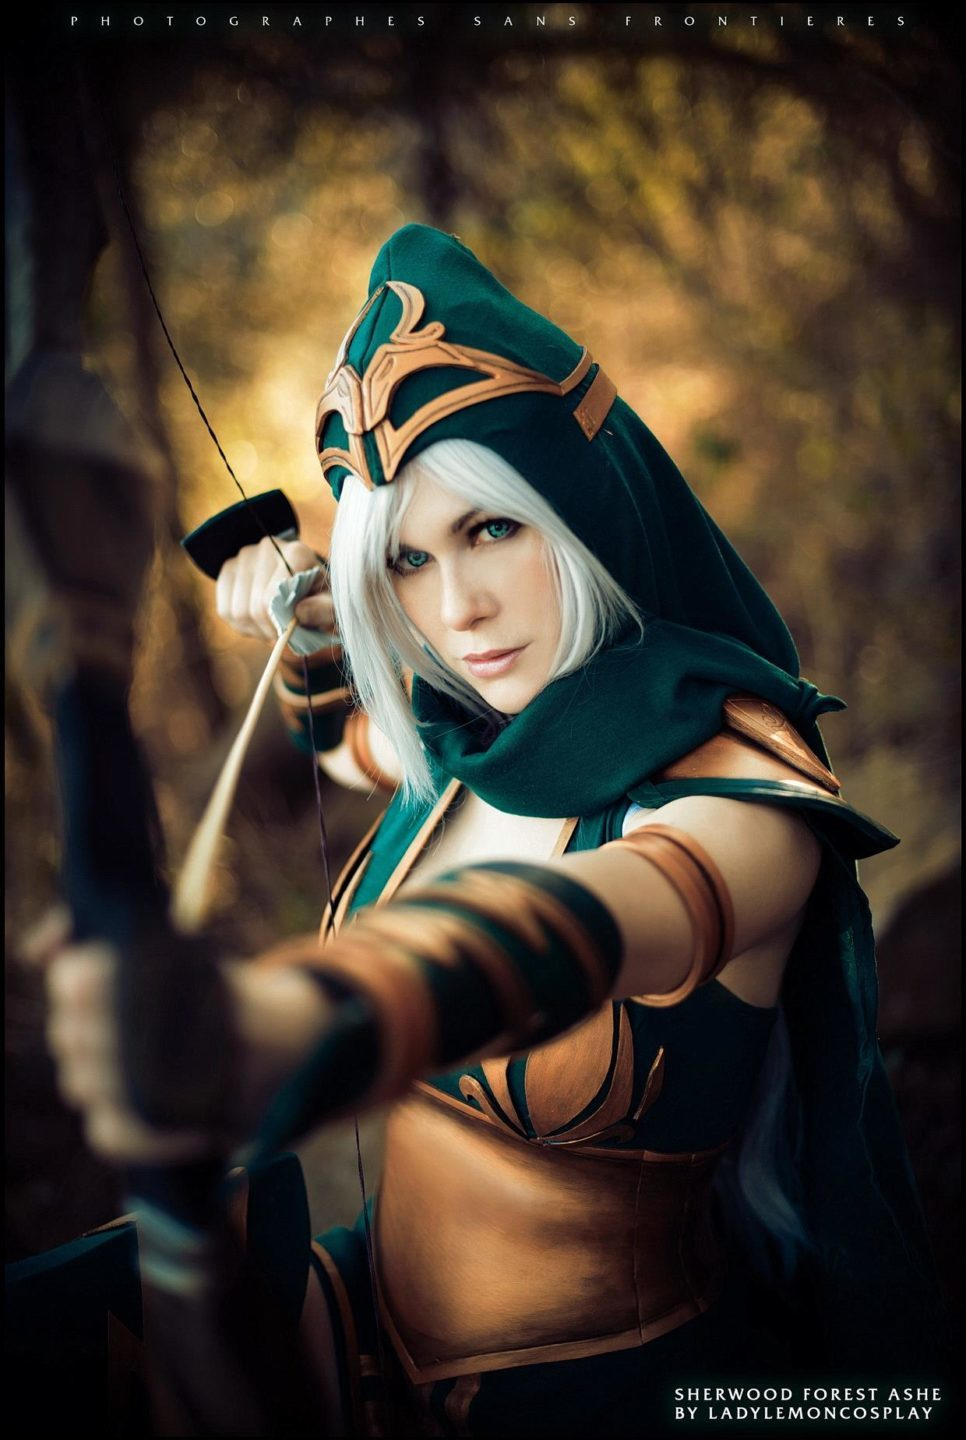 Sherwood Forest Ashe z League of Legends